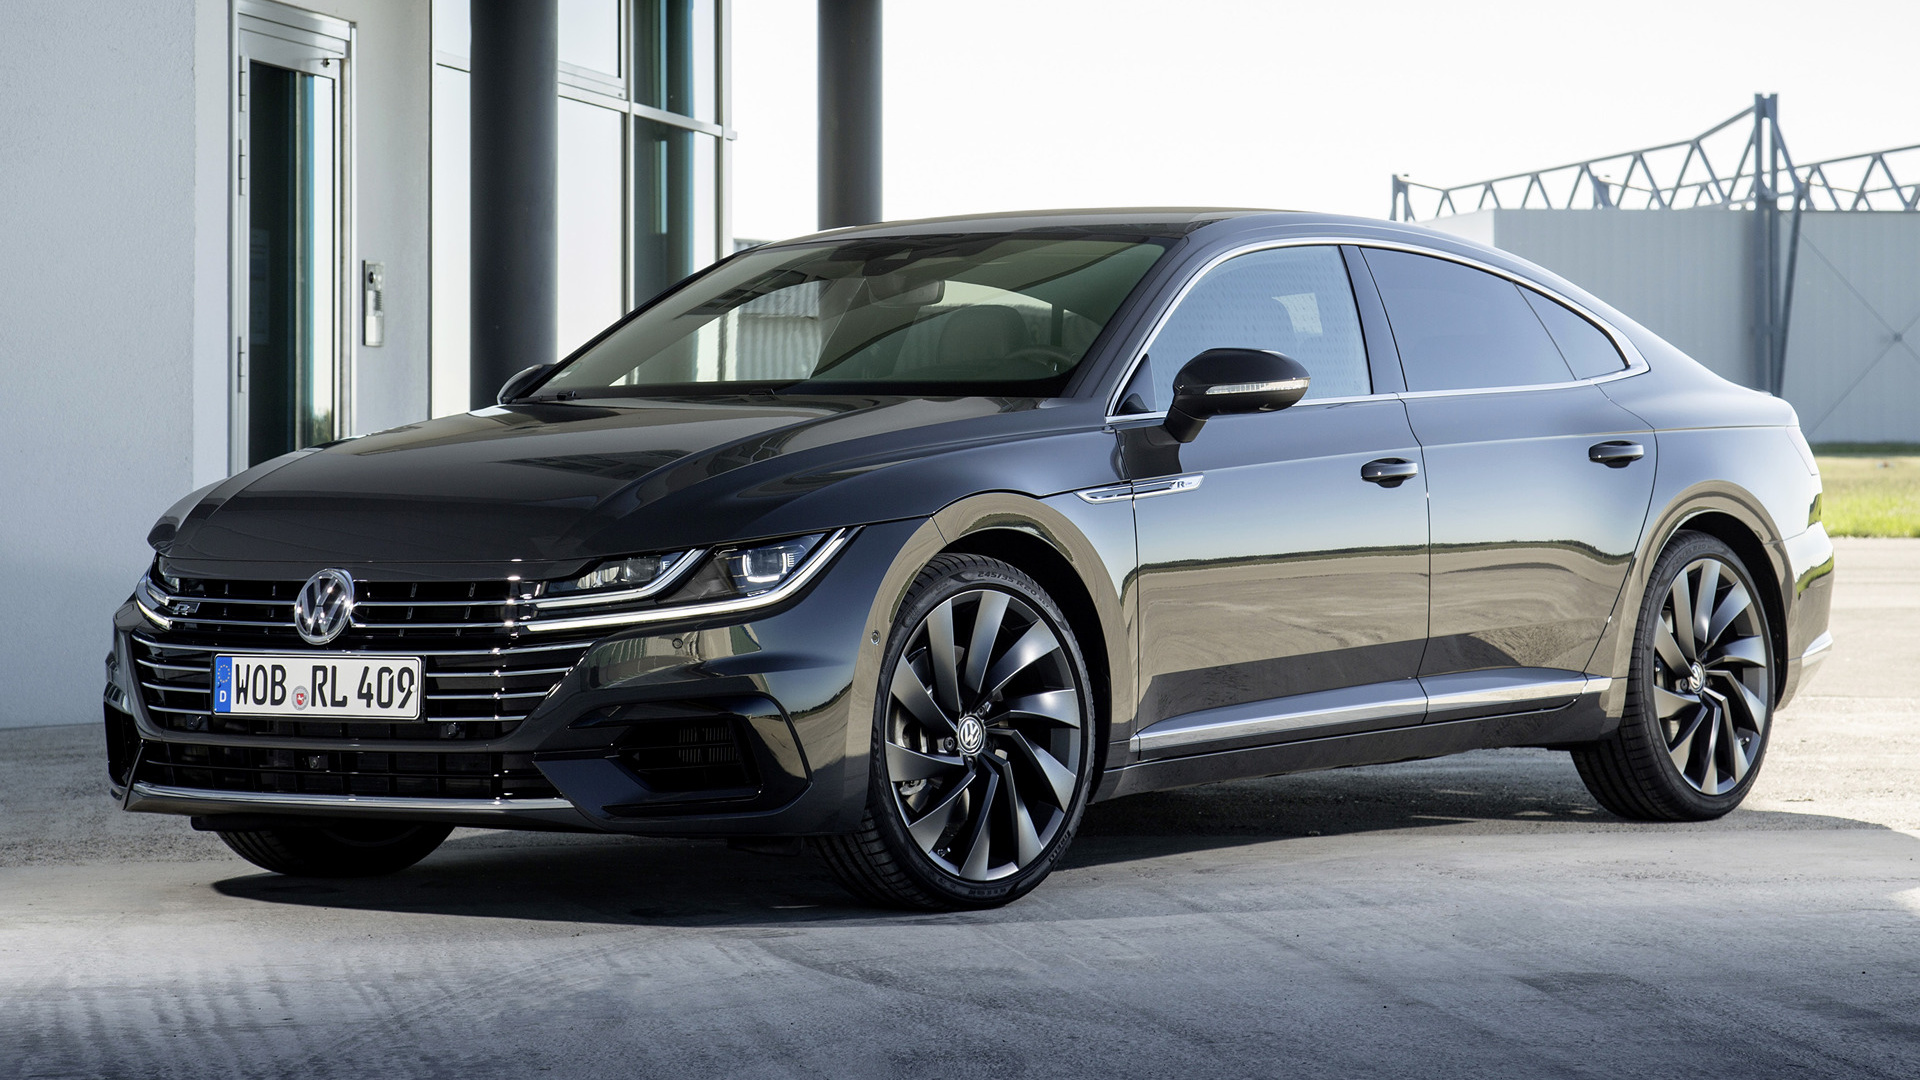 1920x1080 - Volkswagen Arteon Wallpapers 31